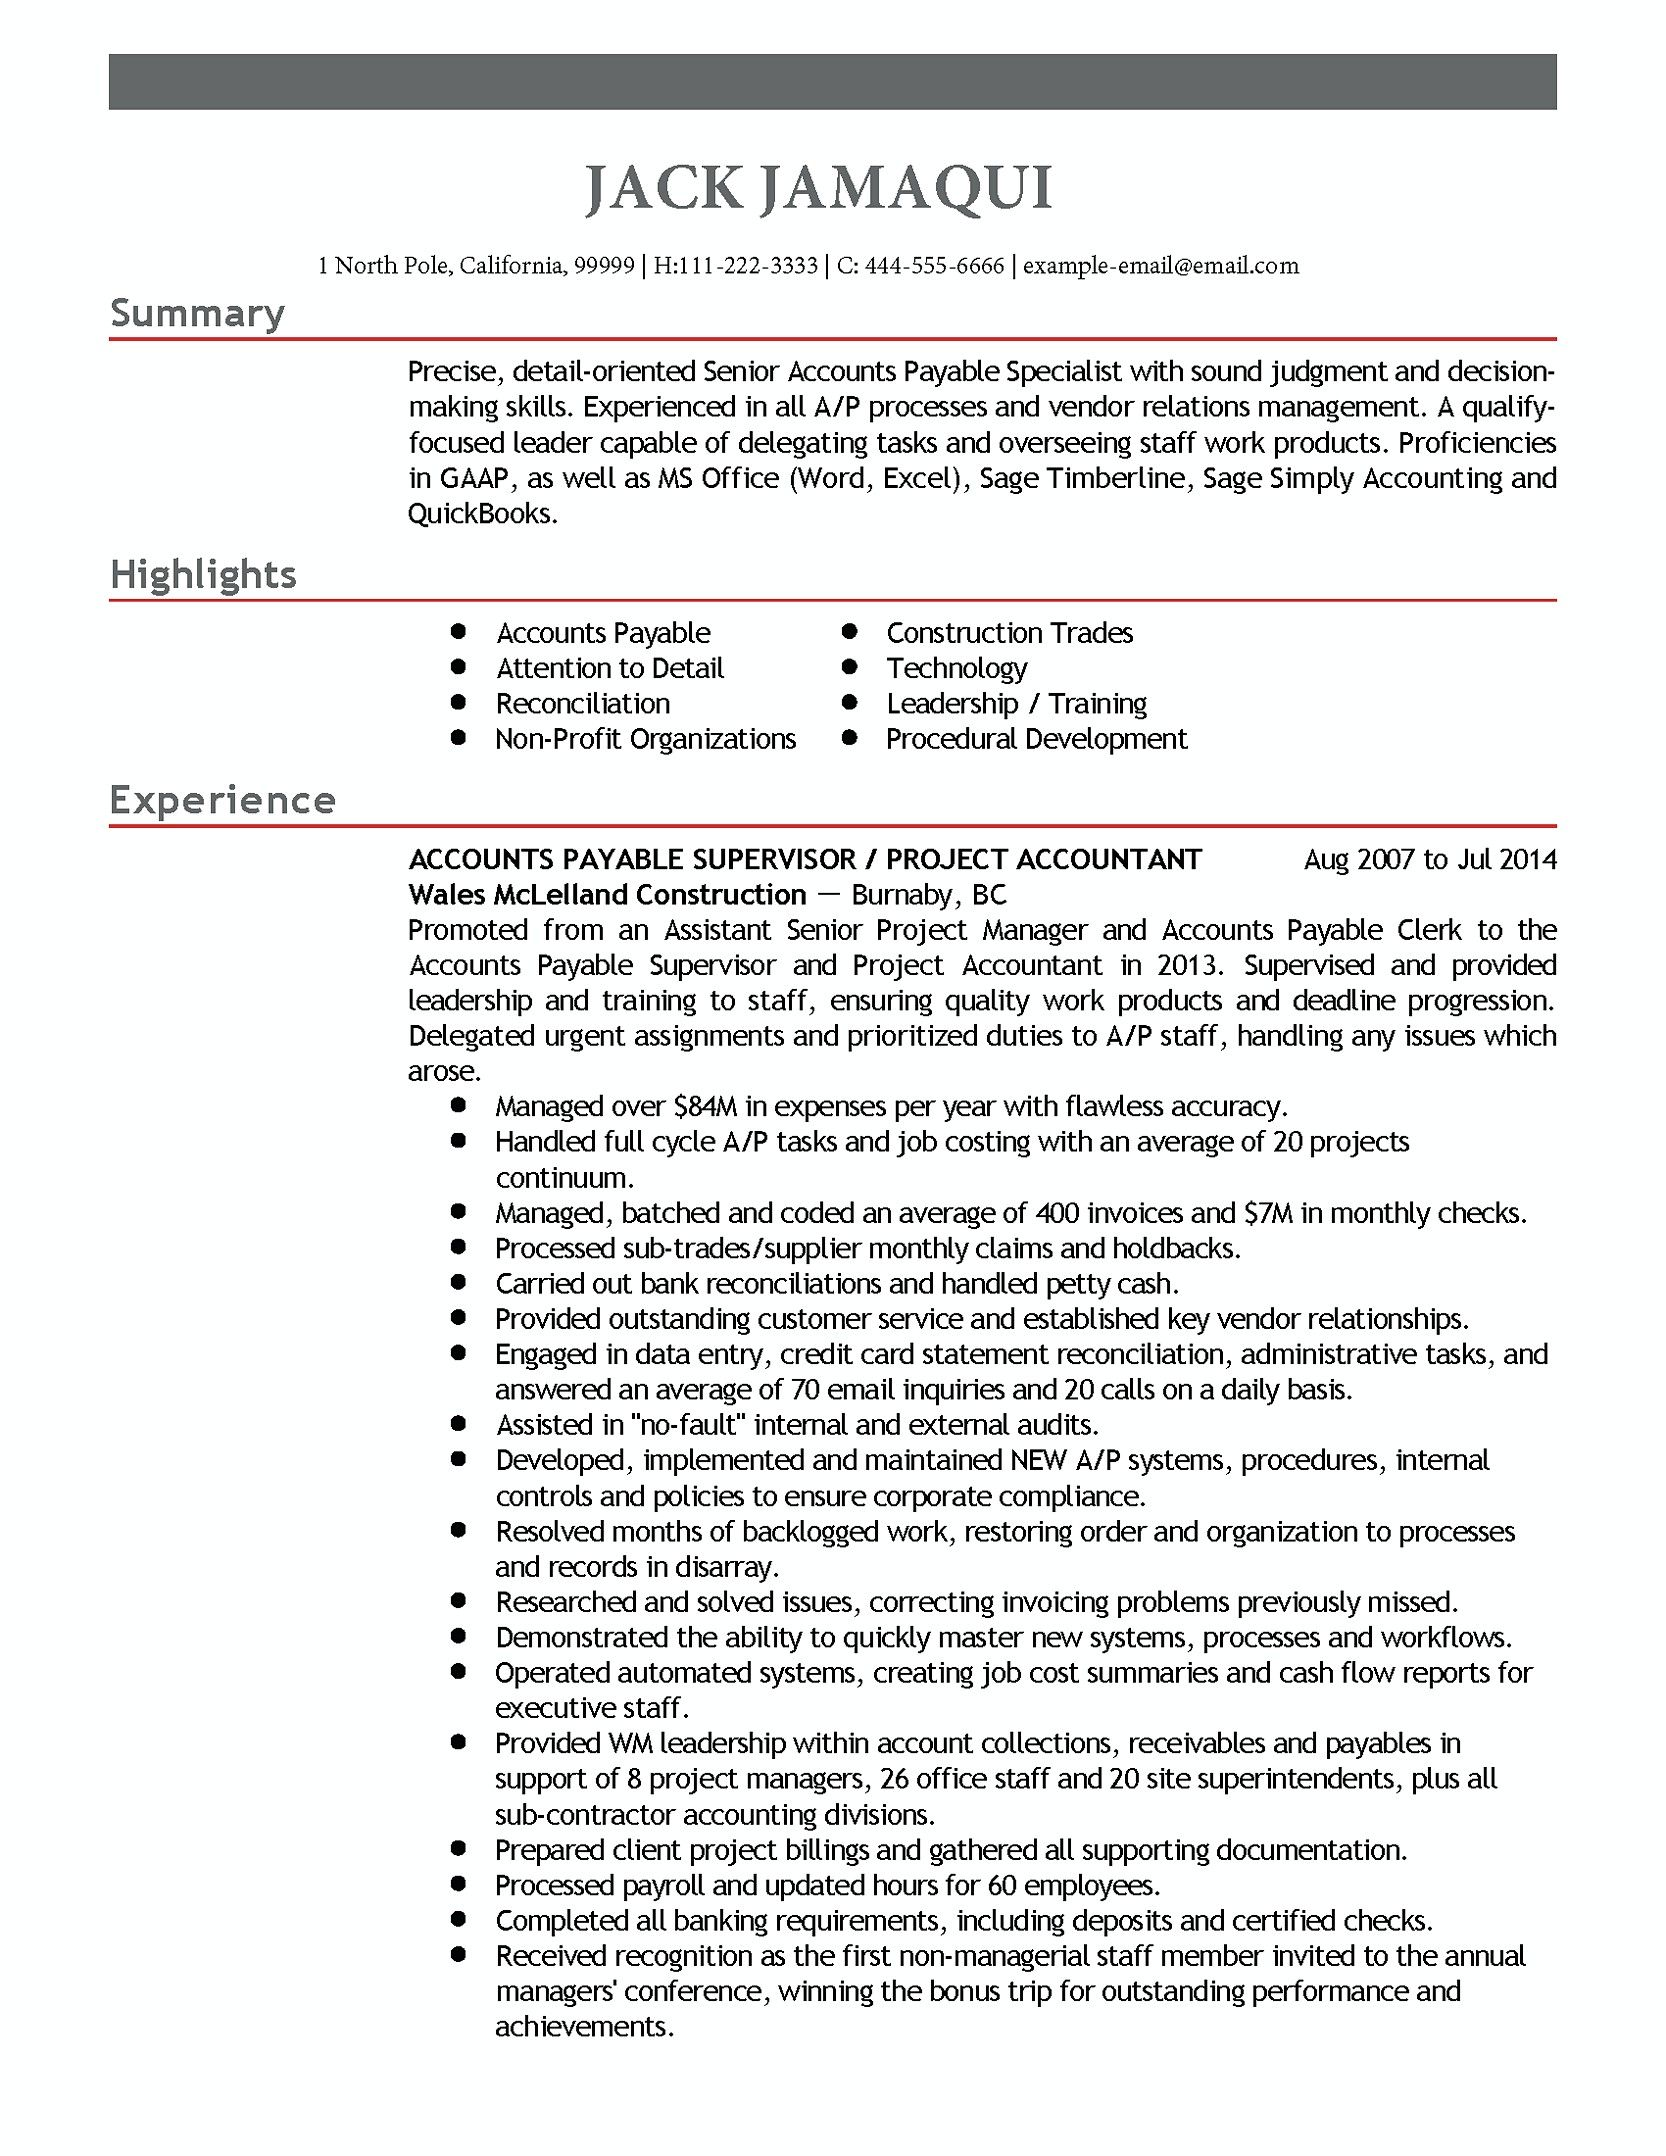 Accounts Payable Manager Resume Accounts Payable Manager Resume Are You A Person With Excellent And Ef Accounts Payable Job Resume Examples Resume Examples